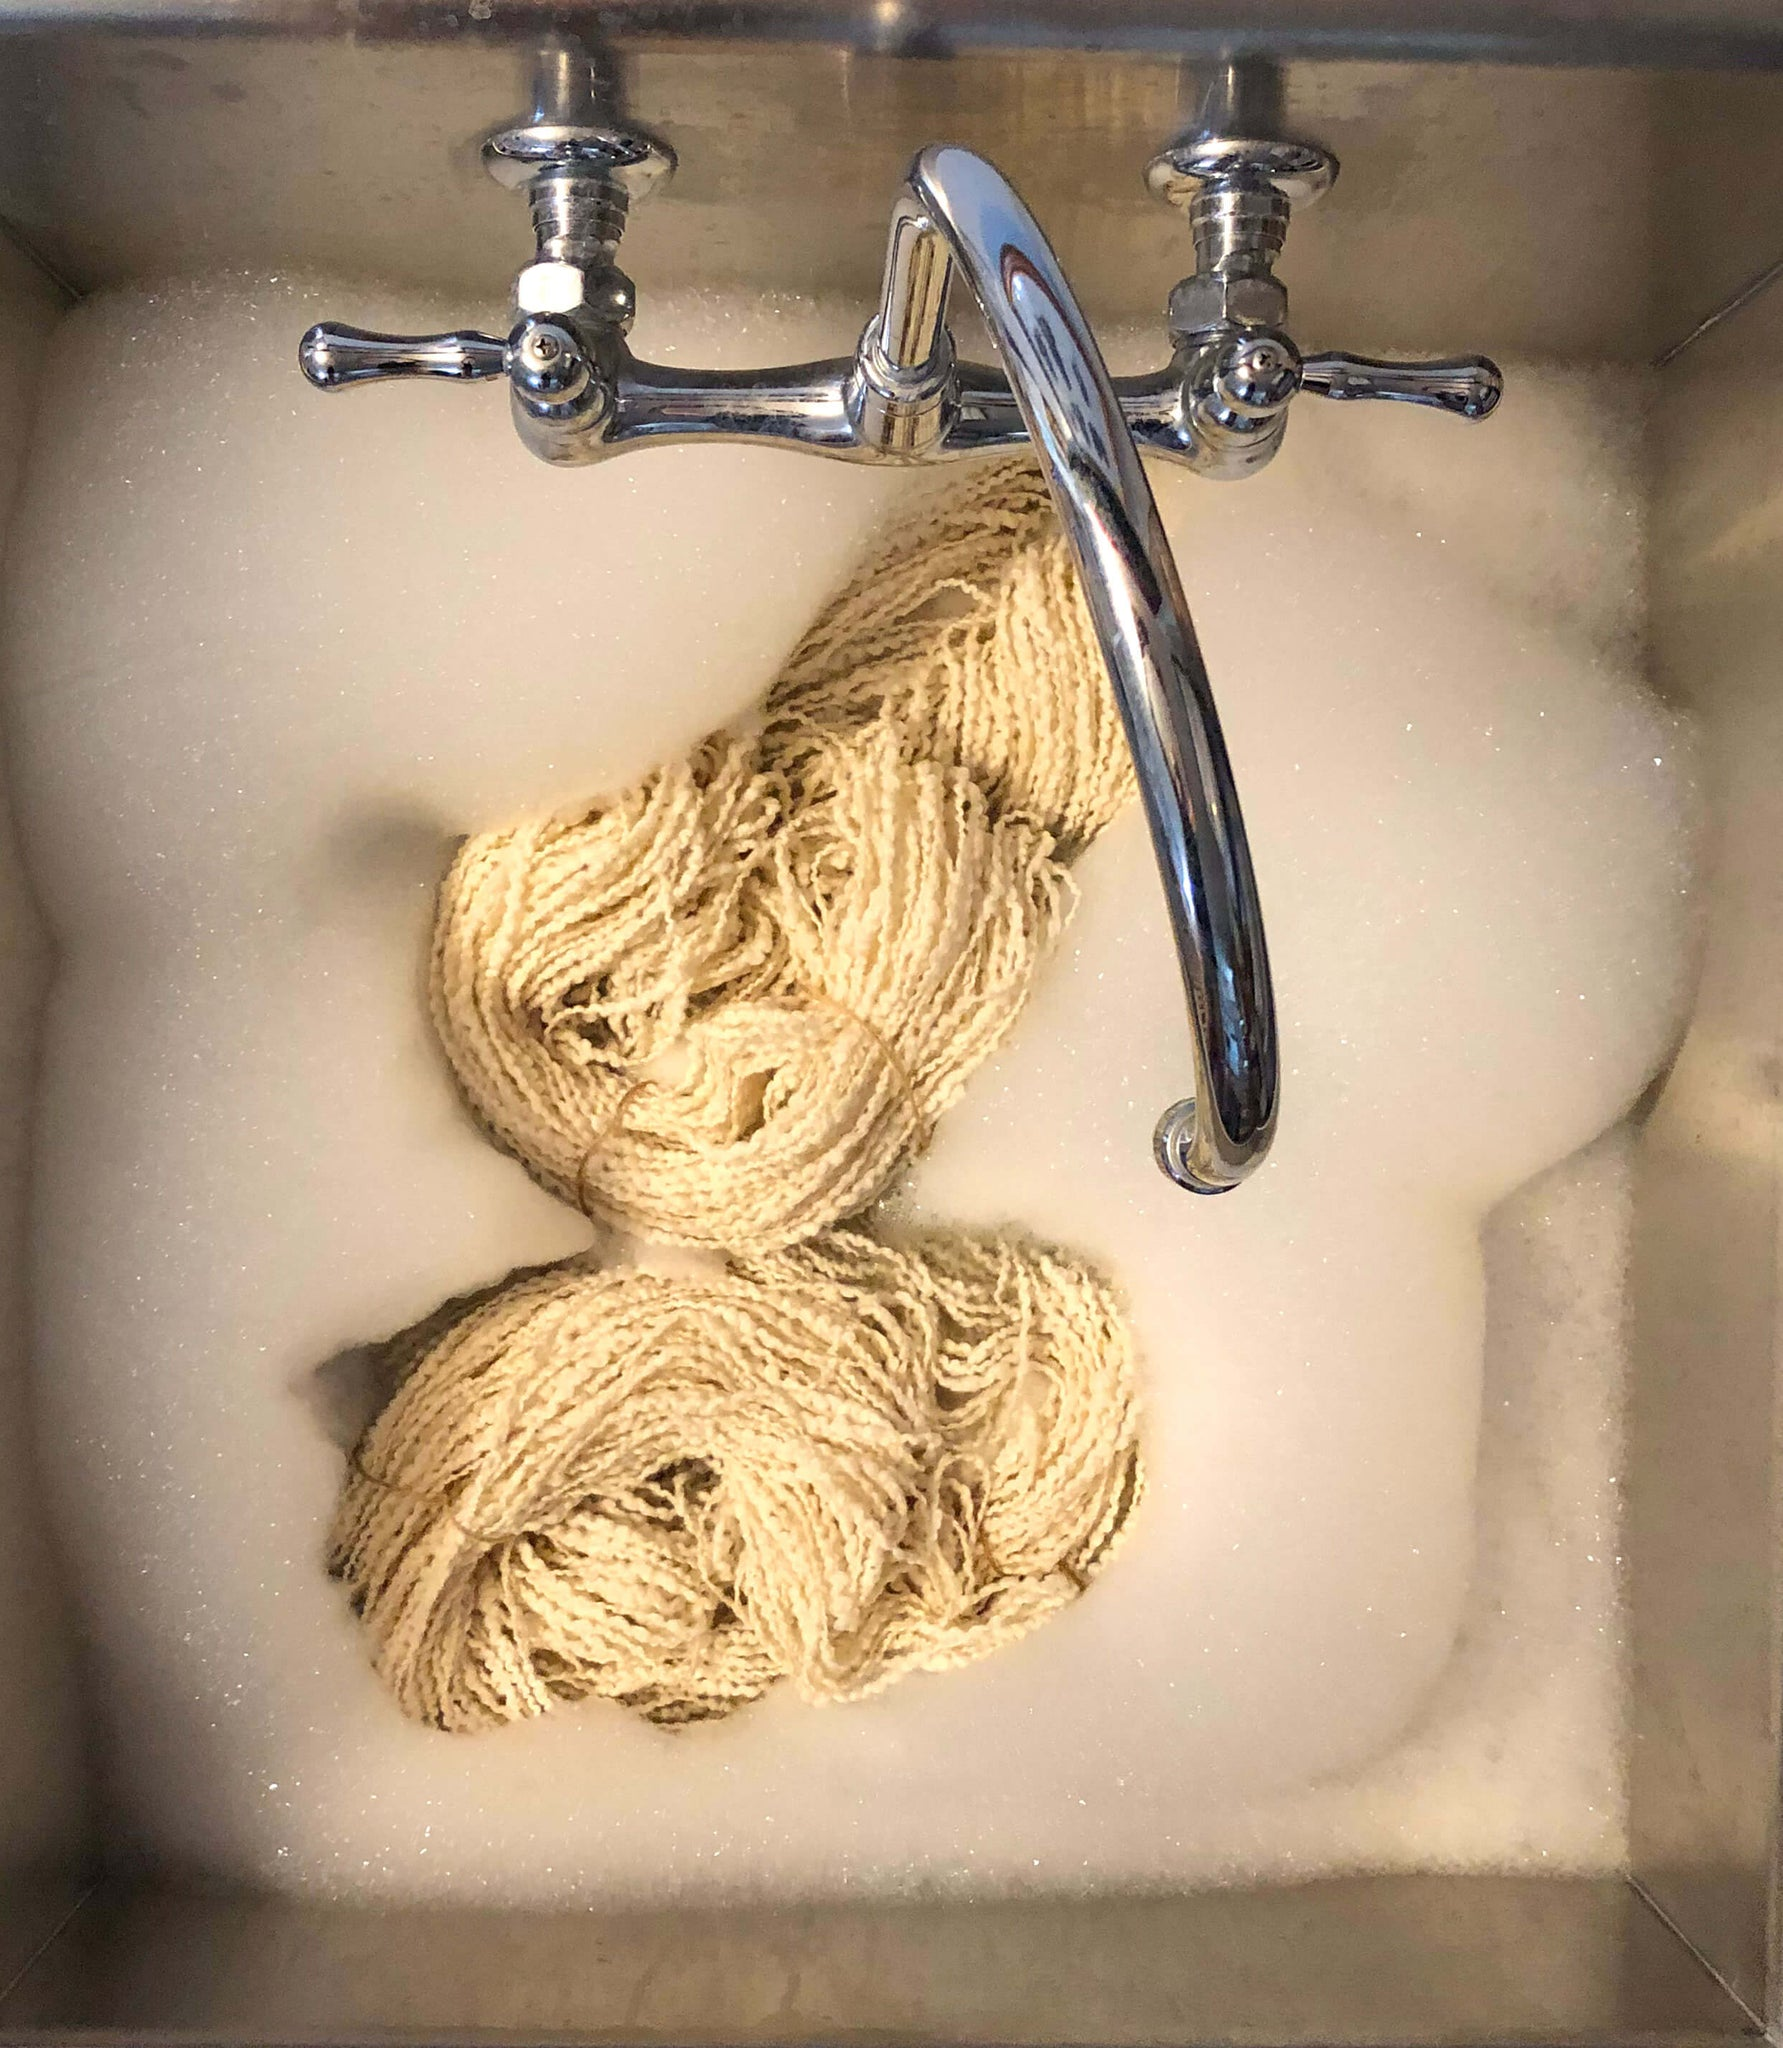 Scouring wool in a sink